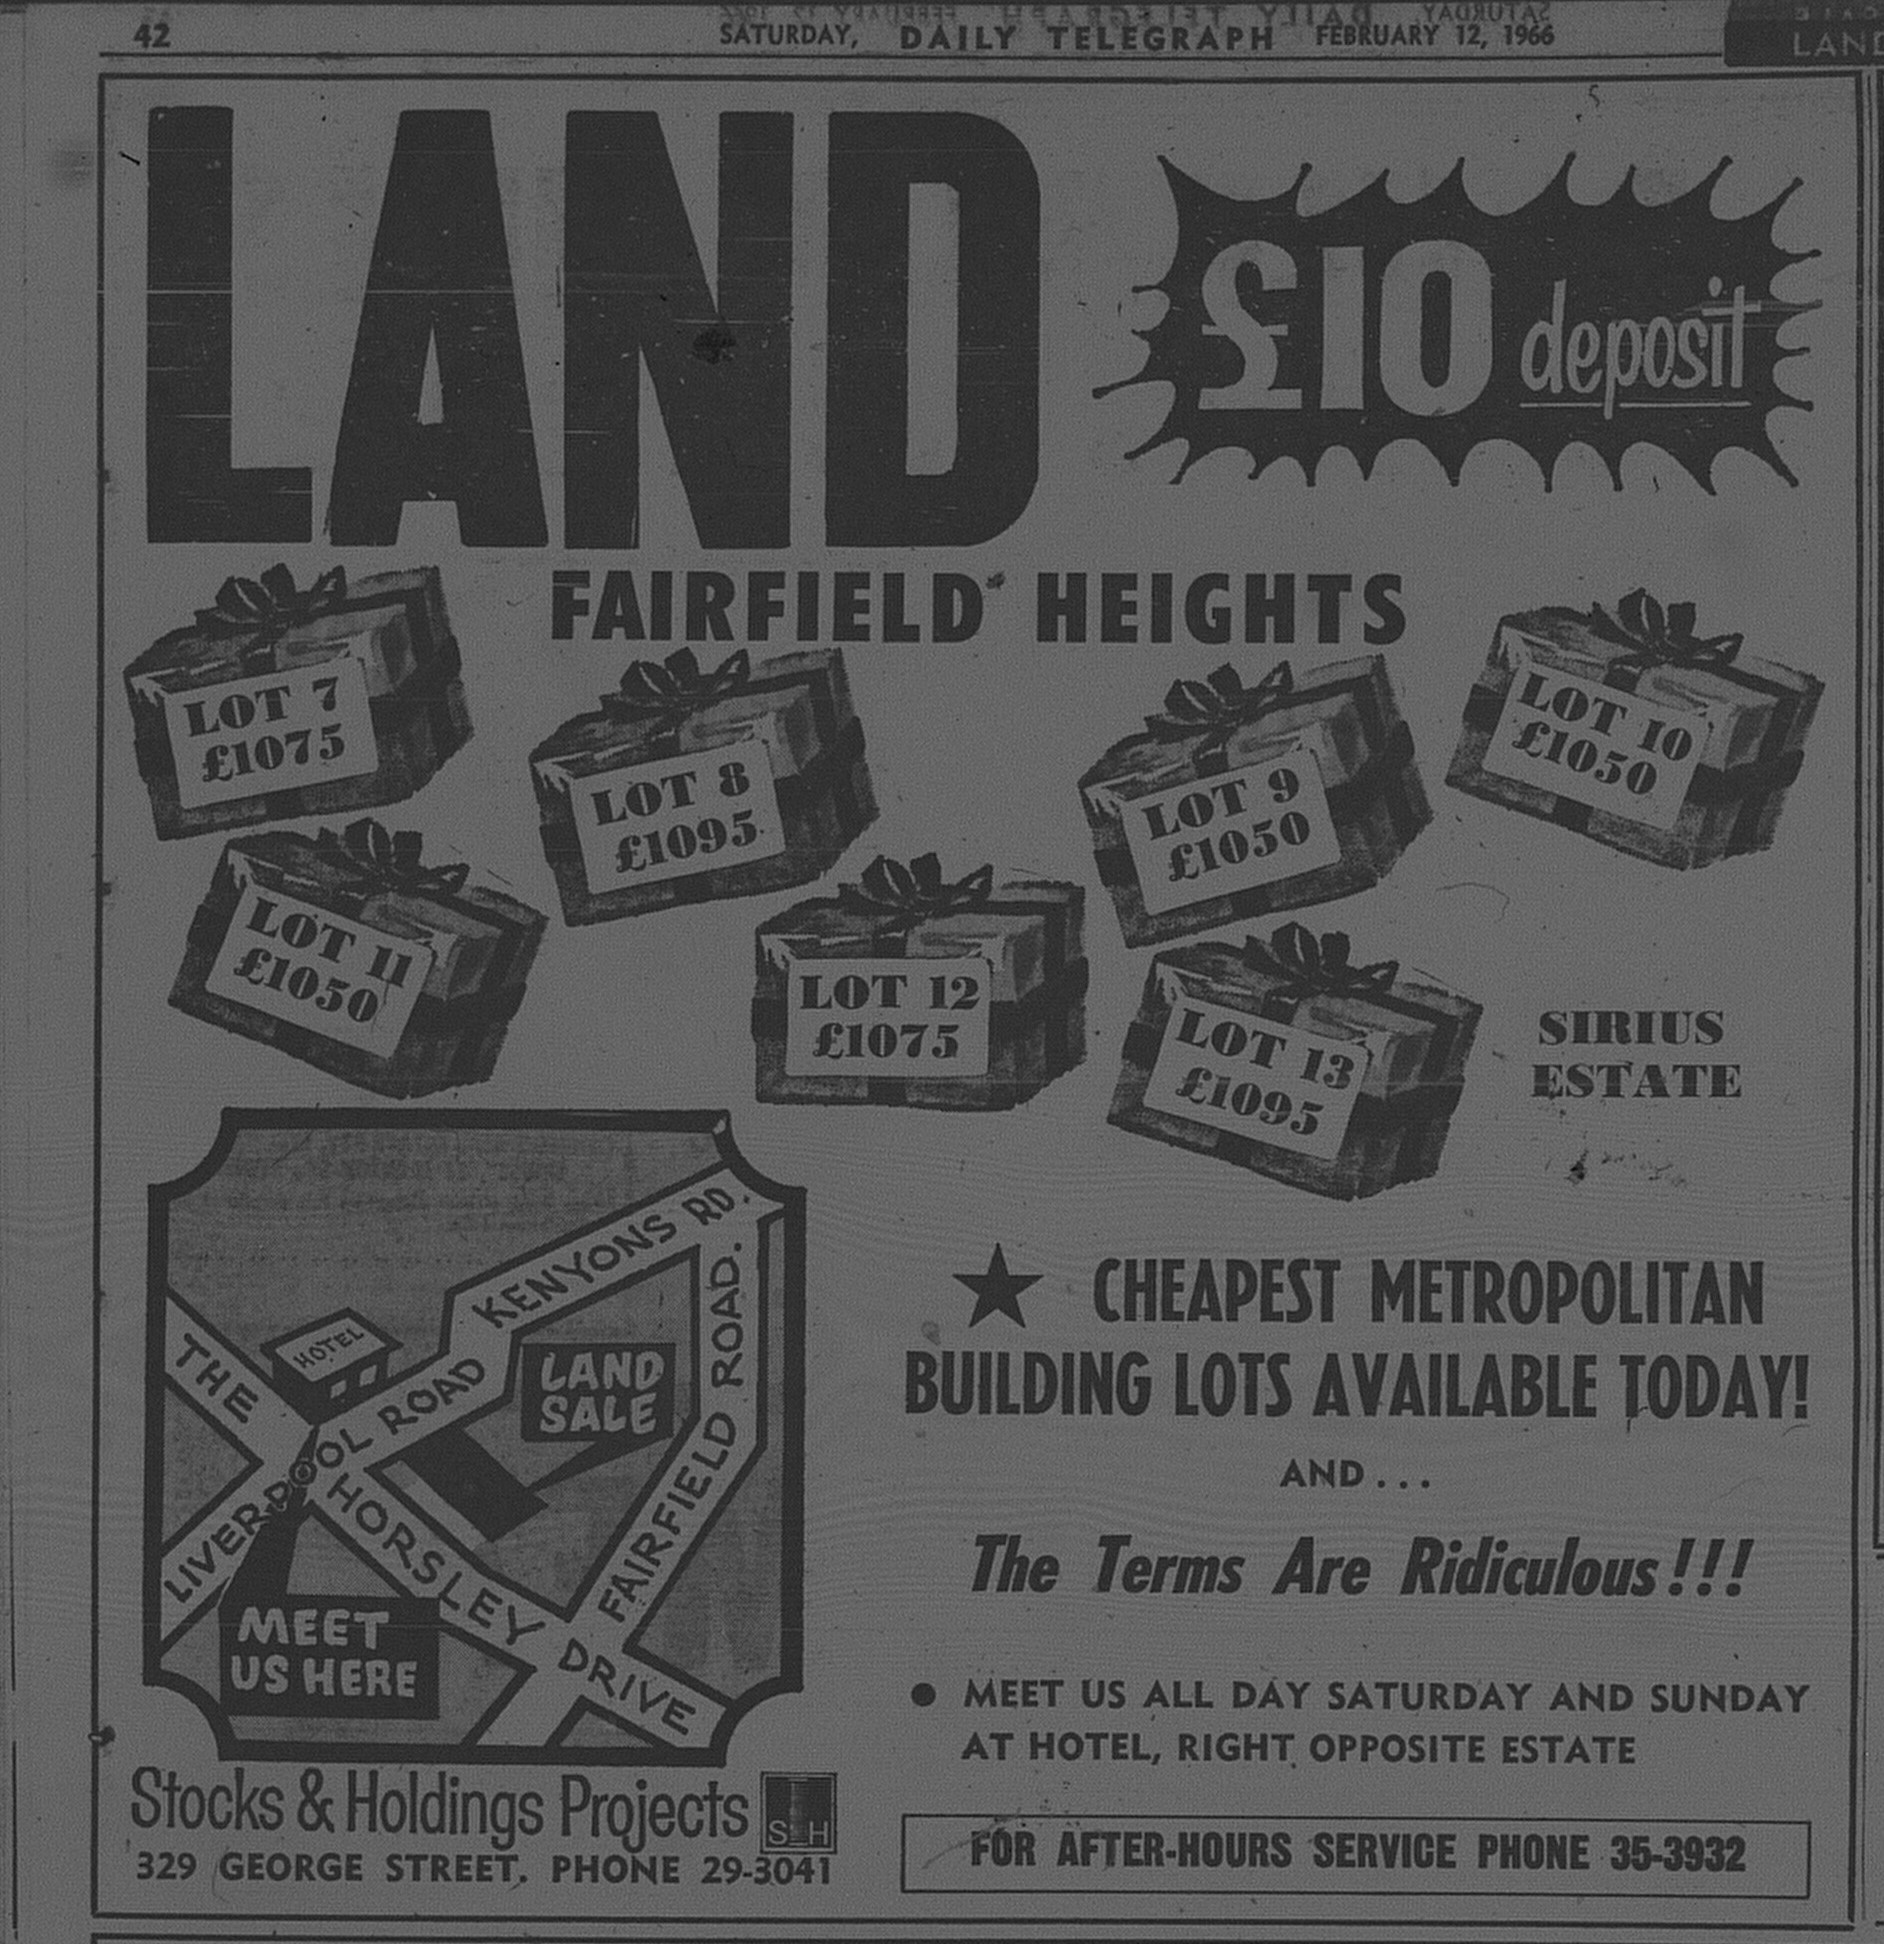 Fairfield Heights Ad February 12 1966 daily telegraph 12